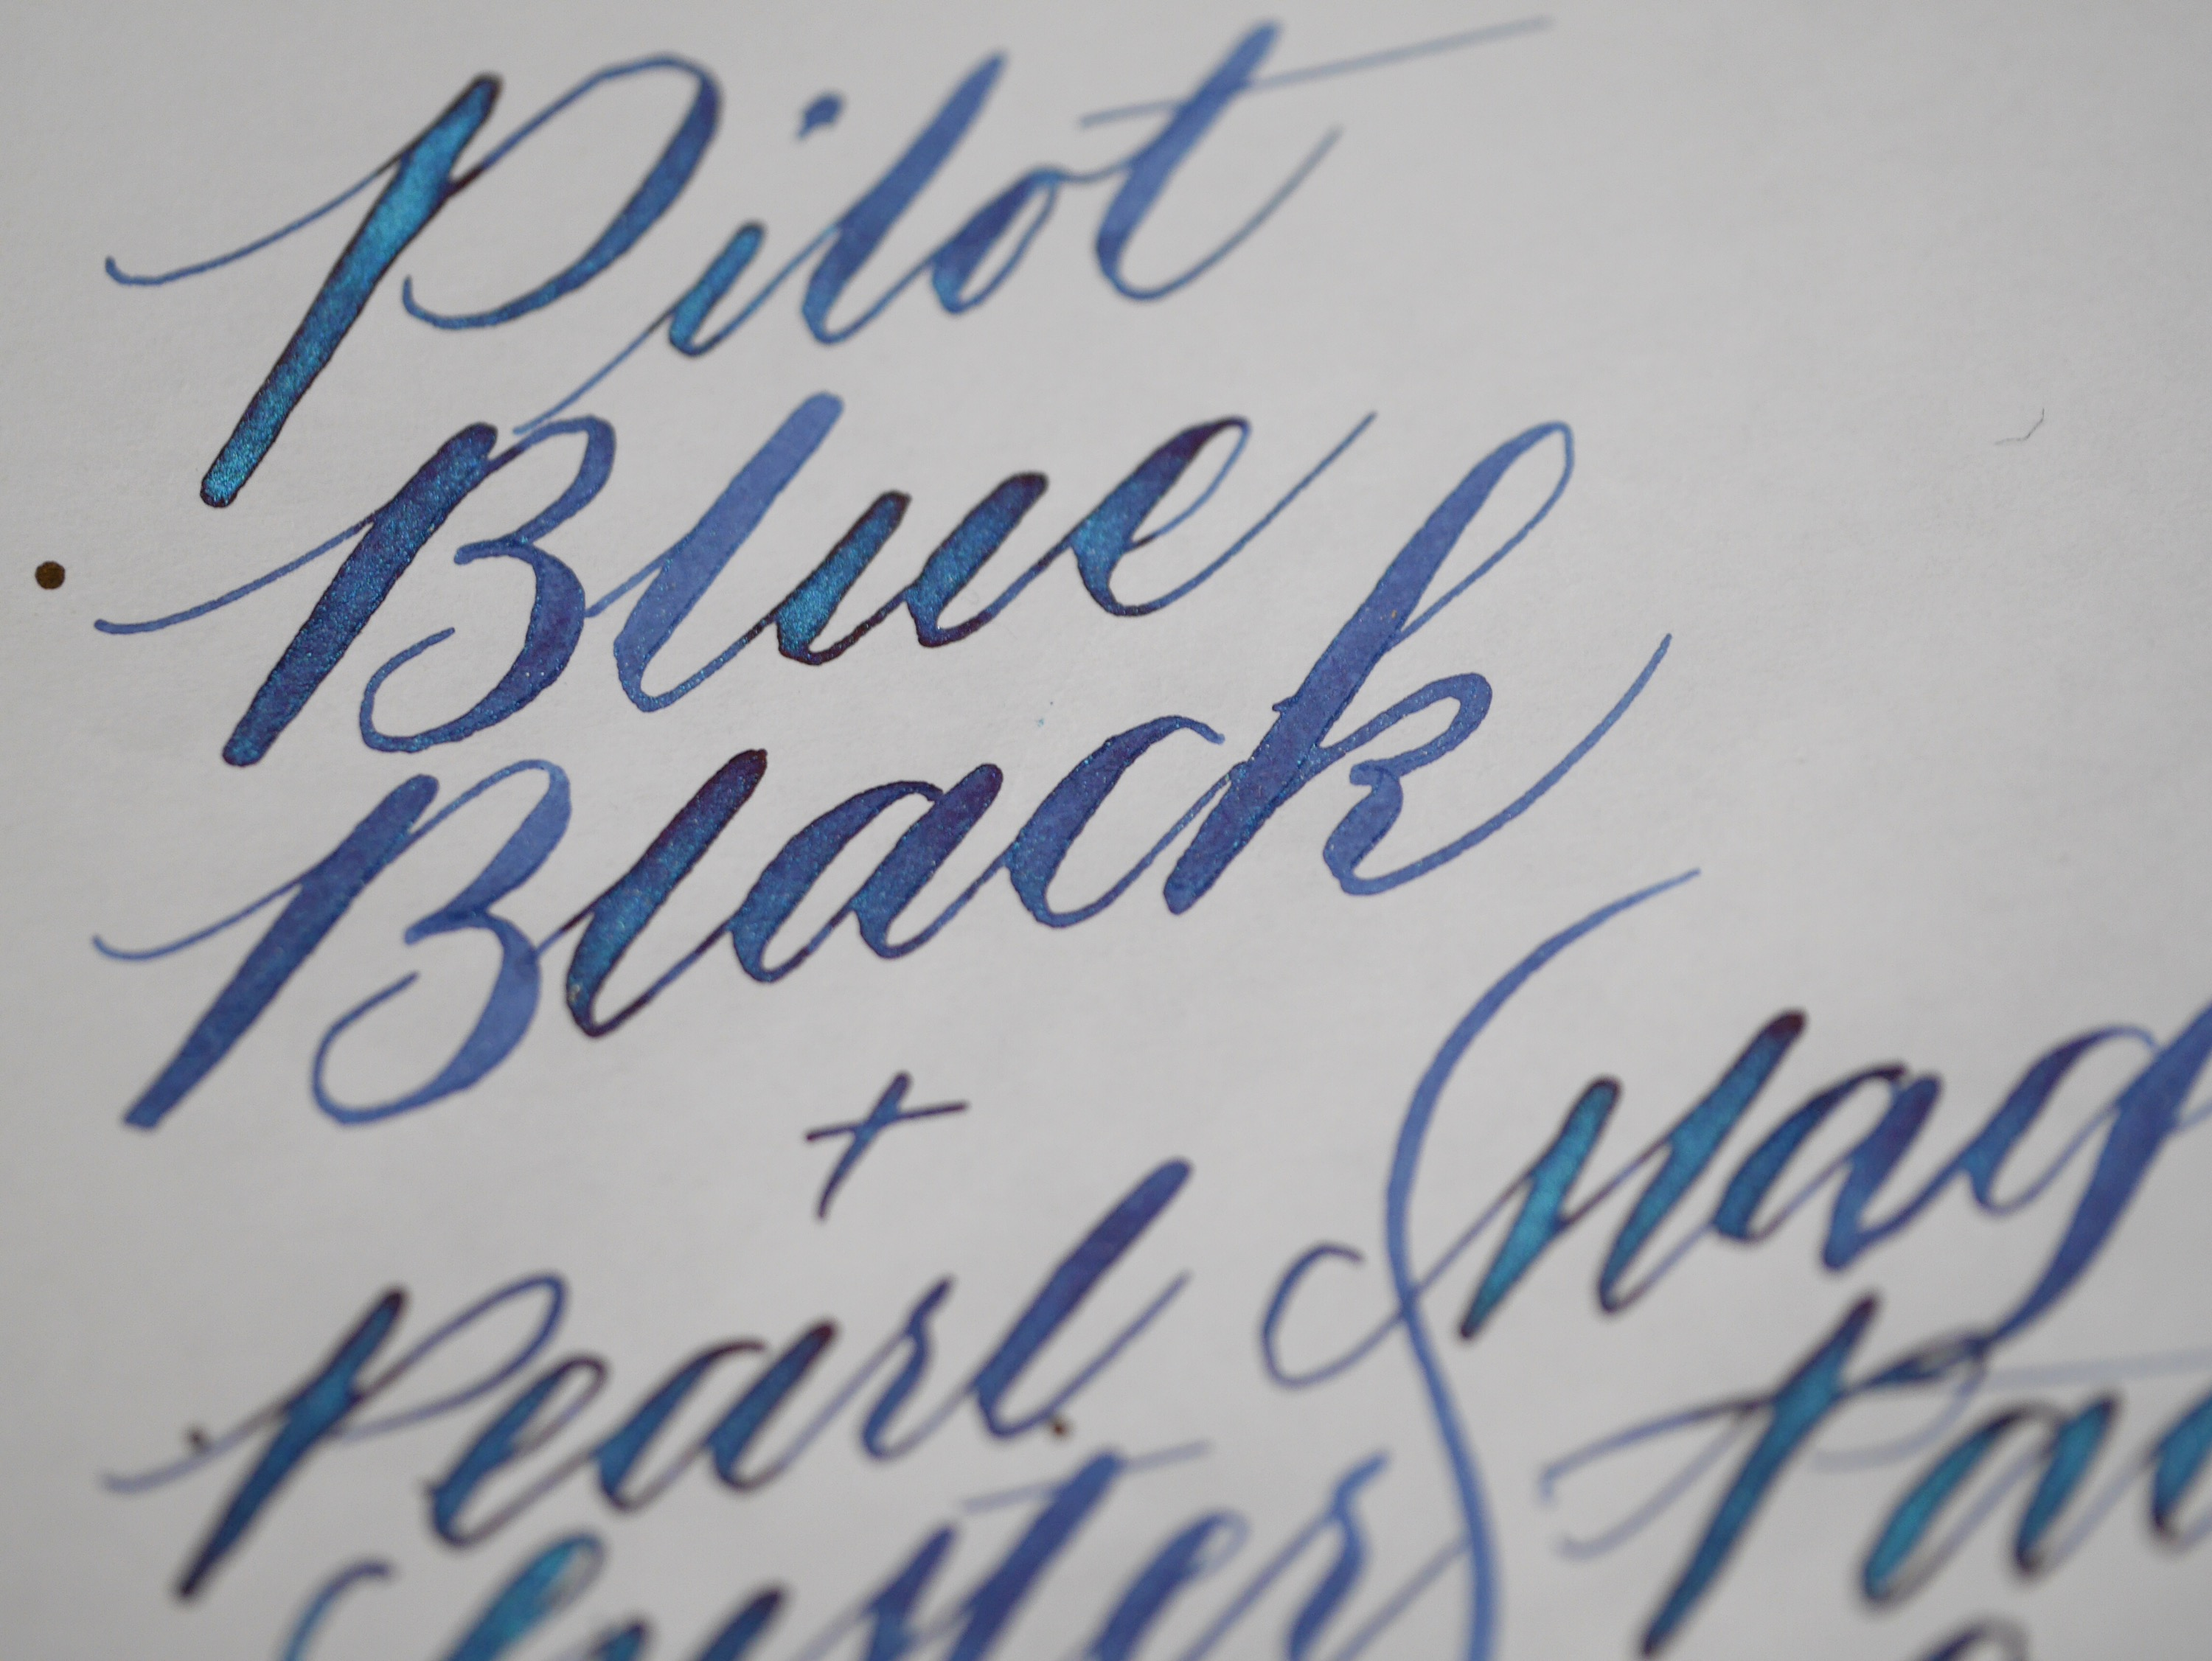 Pilot Blue Black + Pearl Luster in Magic Pacific Lagoon, Desiderata pen with Zebra G nib